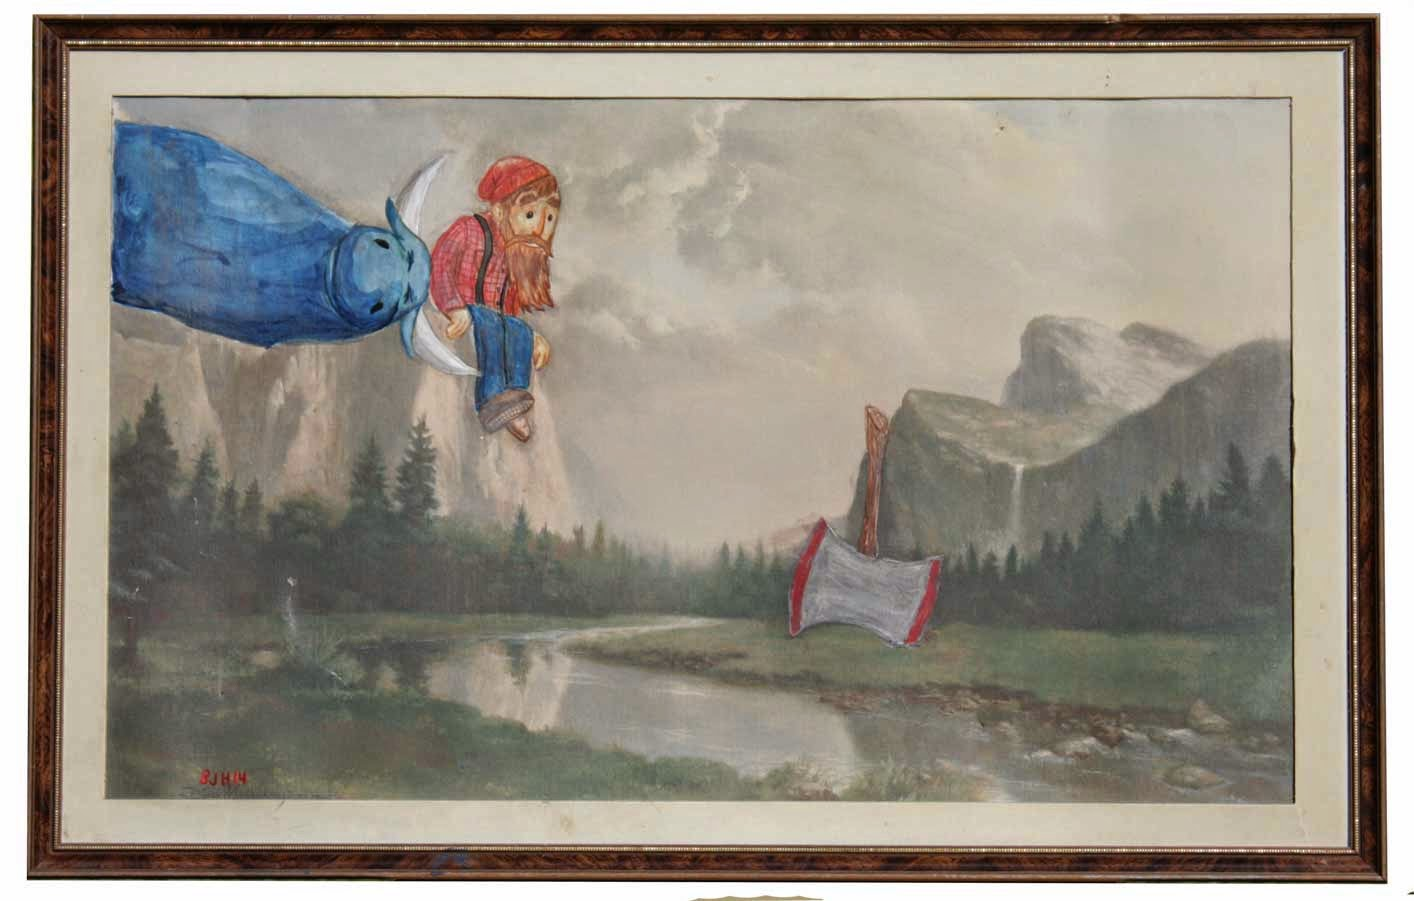 Paul Bunyan and Blue on a Thrift Store Painting by Ben J Hutchison